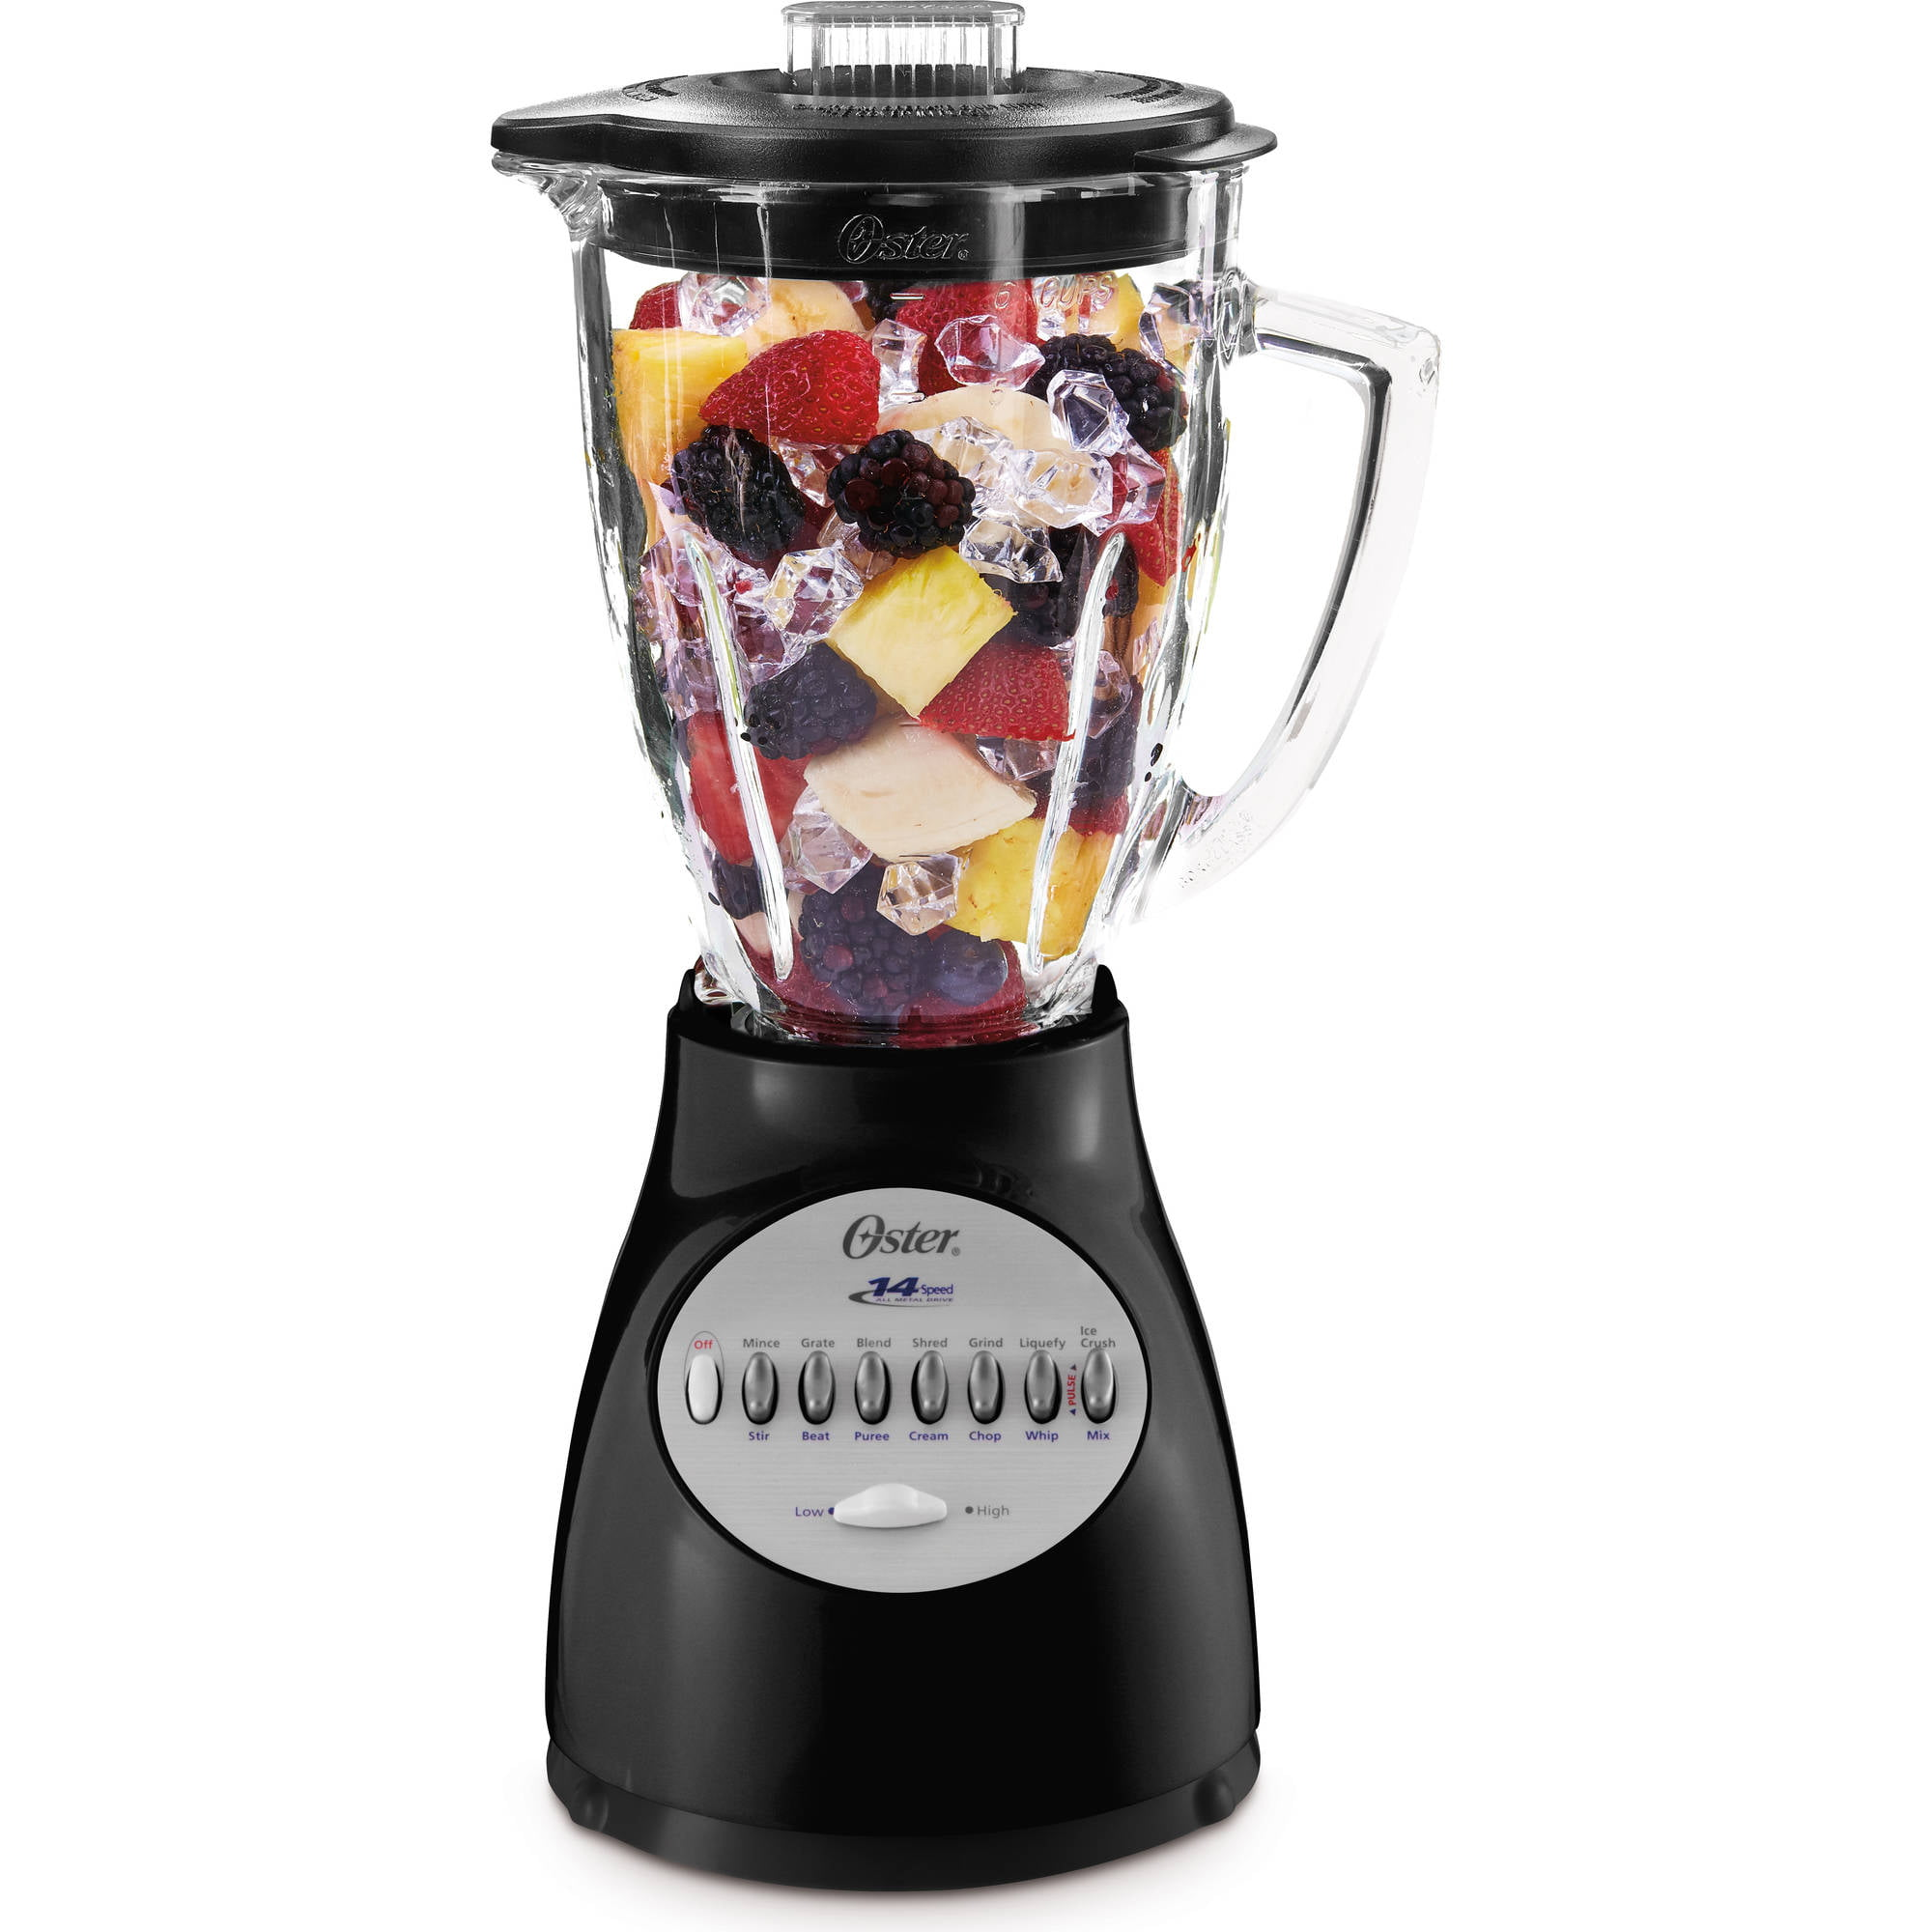 Oster Countertop Ice Maker : Details about Oster 14-Speed Accurate Blend 200 Blender 6 Cup Pitcher ...